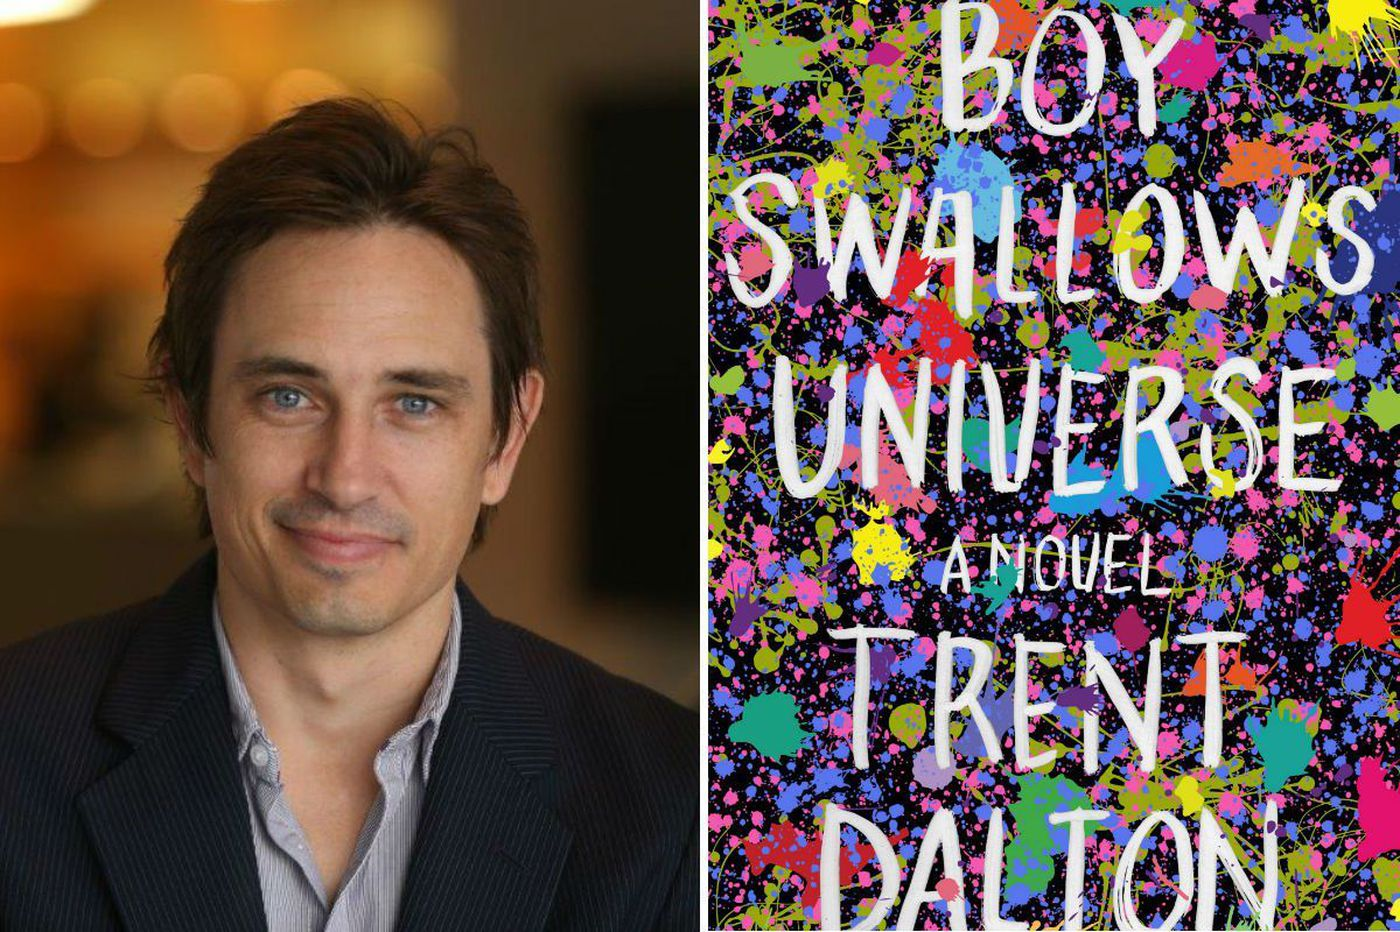 'Boy Swallows Universe' by Trent Dalton: High-stakes coming-of-age tale